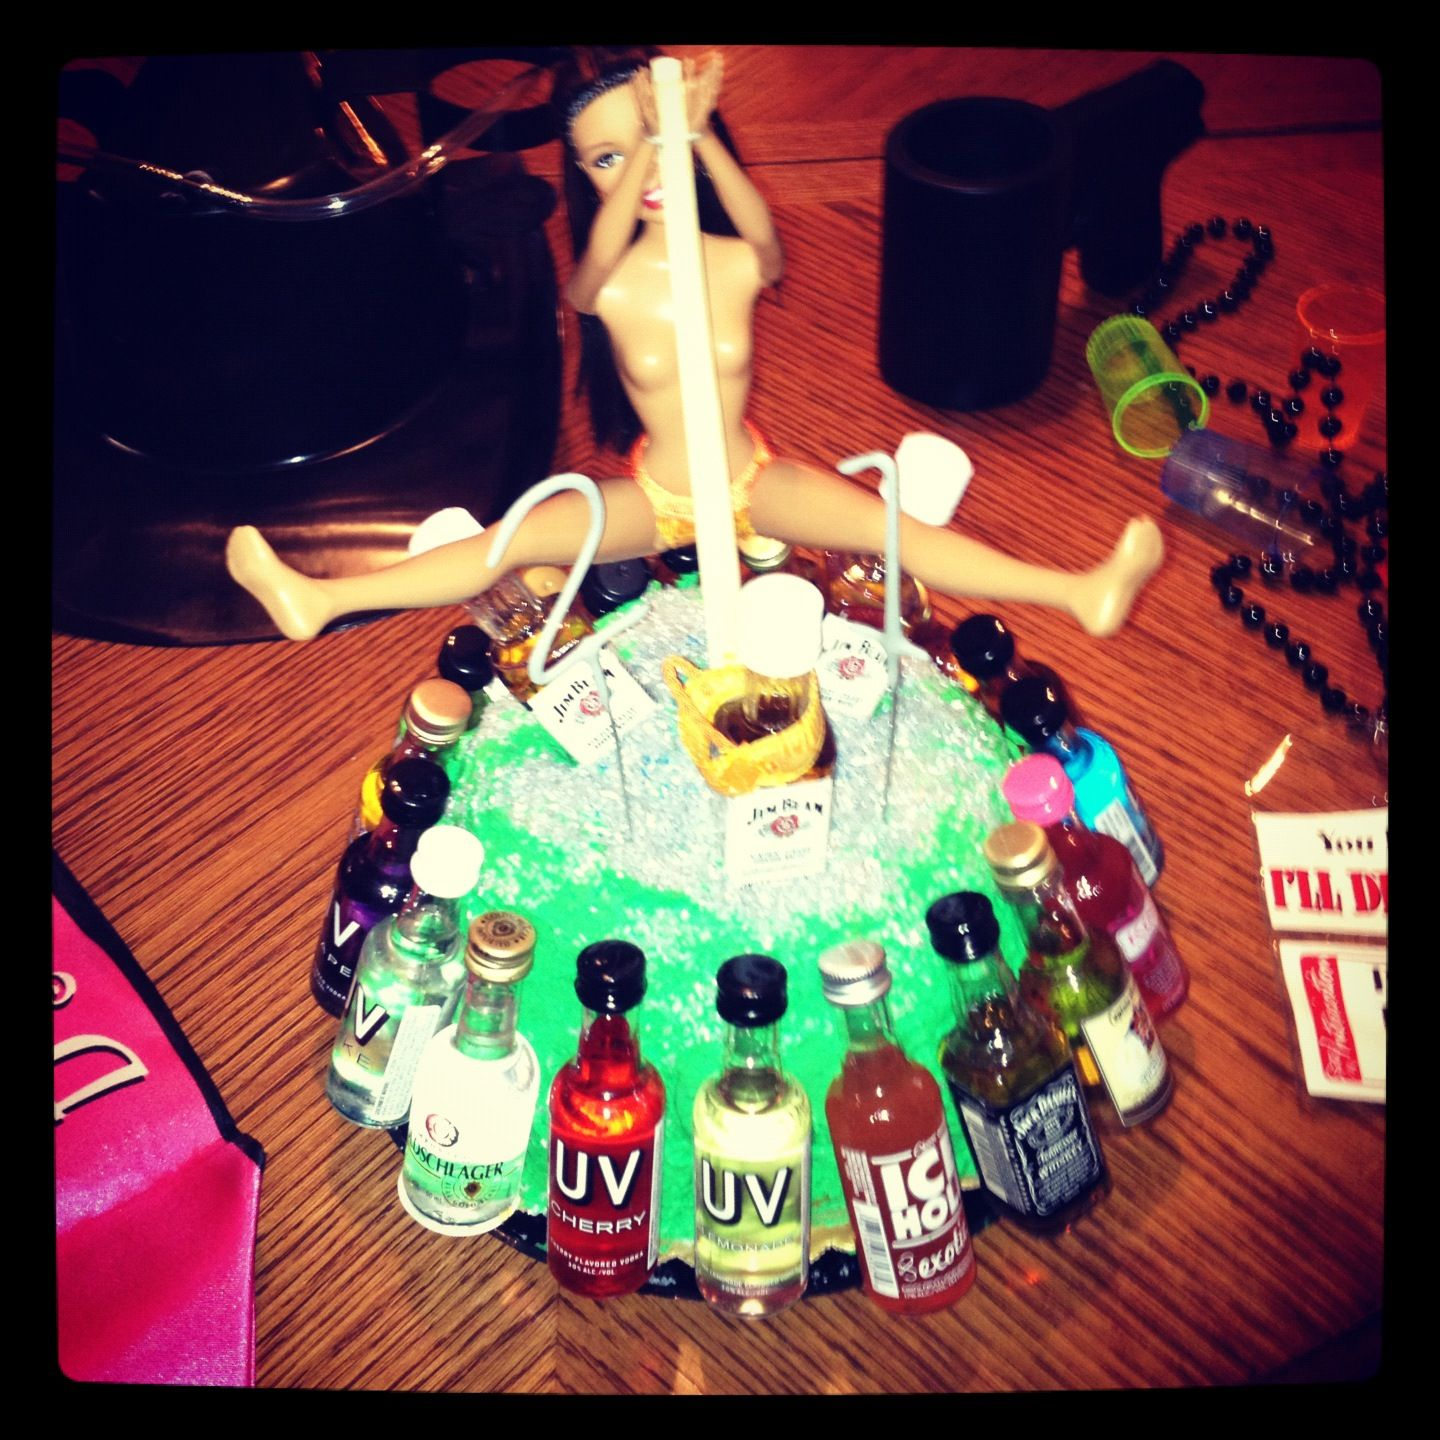 St Birthday Cake For A Guy Friend Shots And A Stripper - Birthday cake for a guy